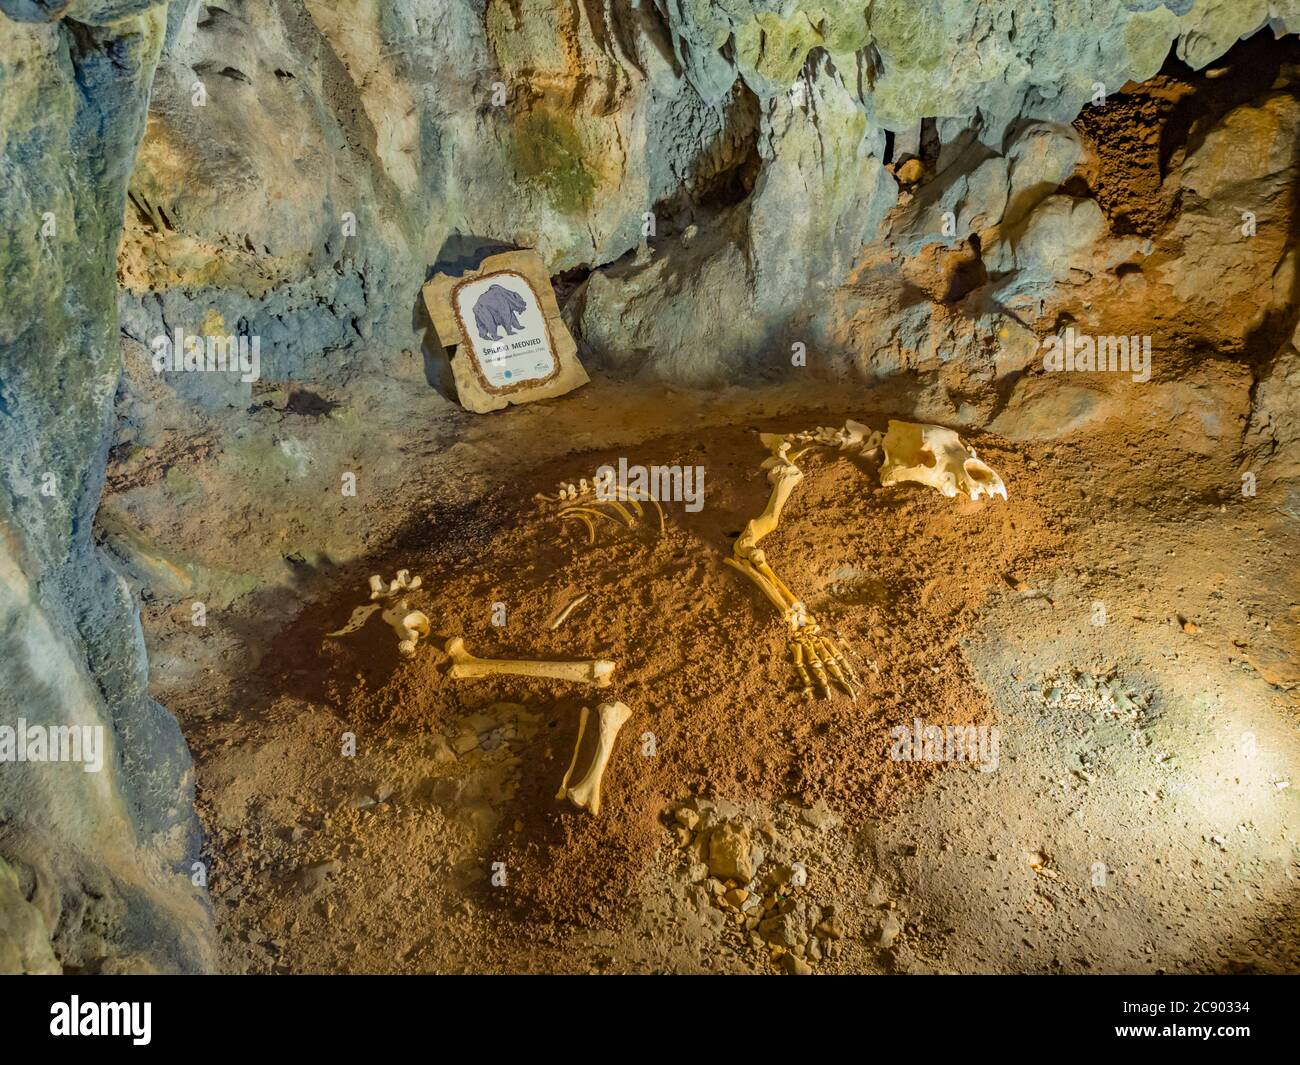 Remains of bear in Biserujka cave in island Krk in Croatia Europe Stock Photo